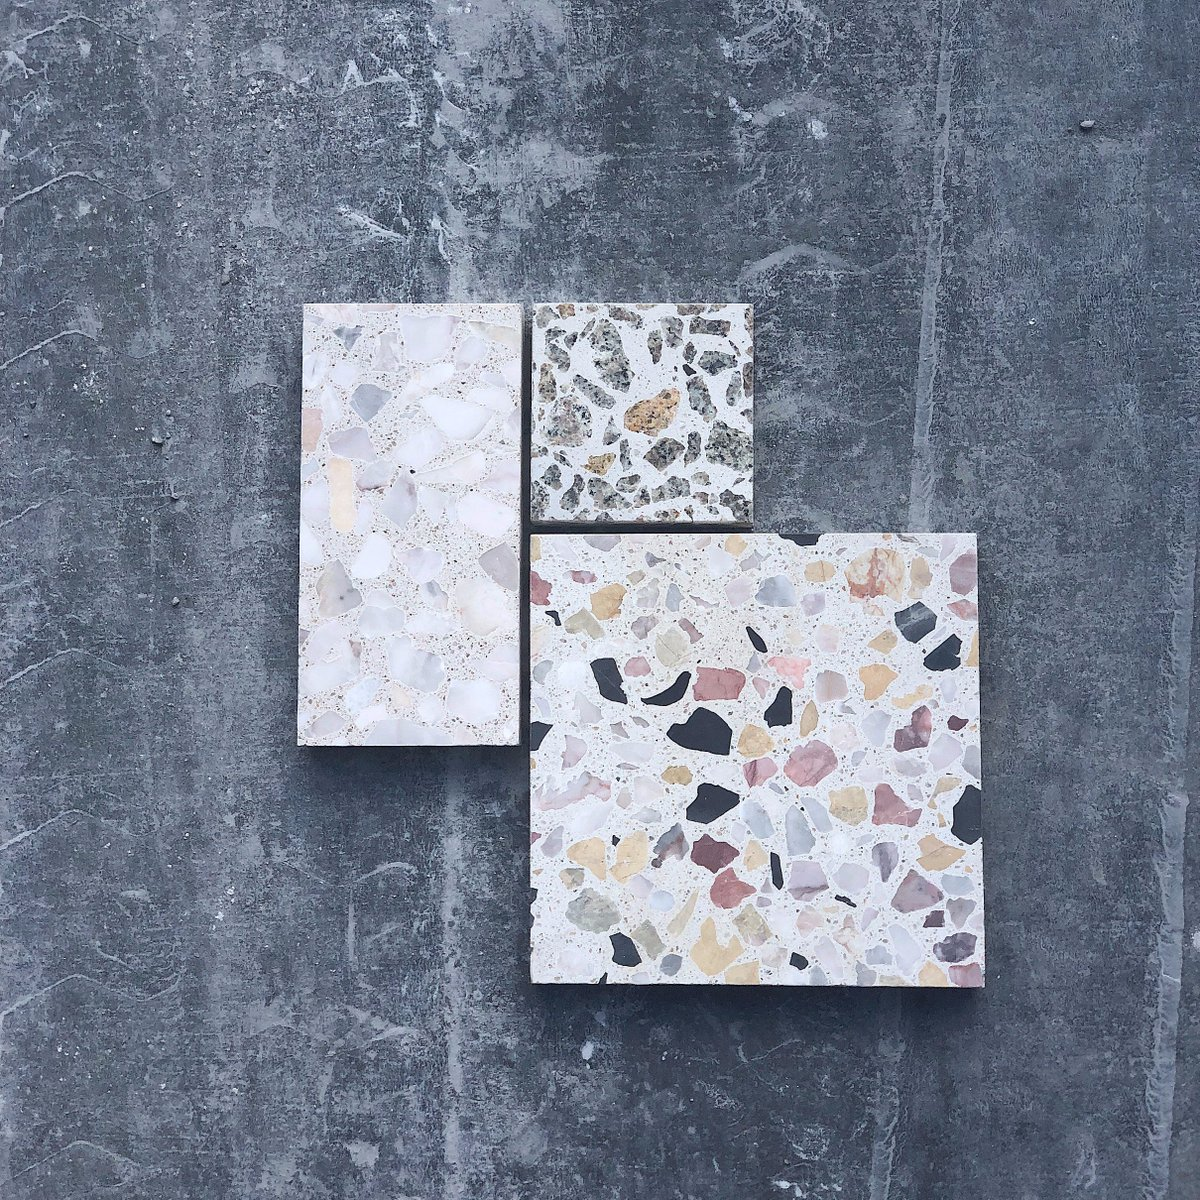 the possibilities with terrazzo are endless 🙌 // alabaster